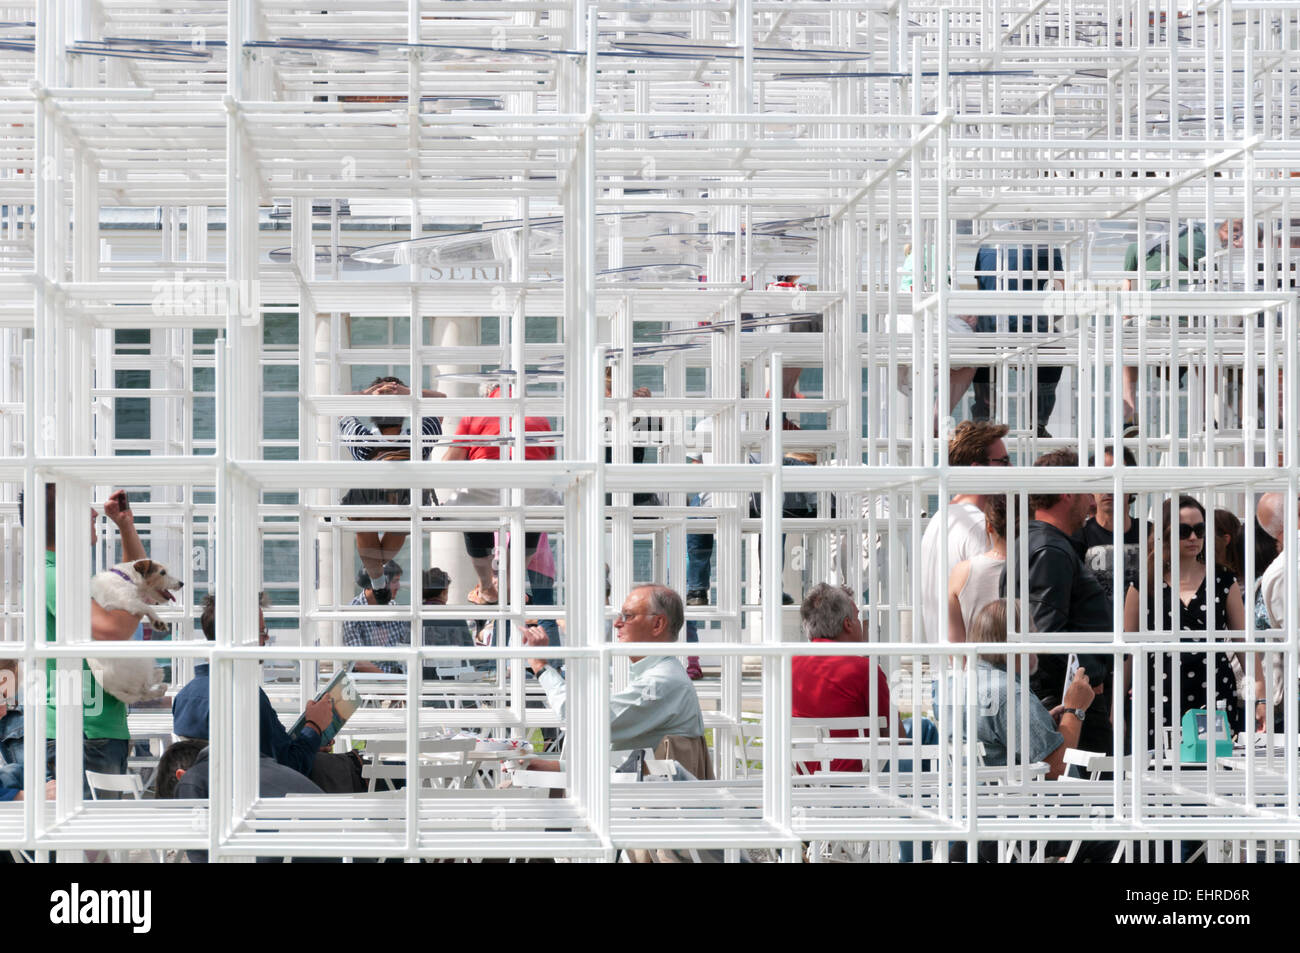 Visitors to the 2013 Serpentine Gallery Summer Pavilion designed by the Japanese architect Sou Fujimoto. - Stock Image